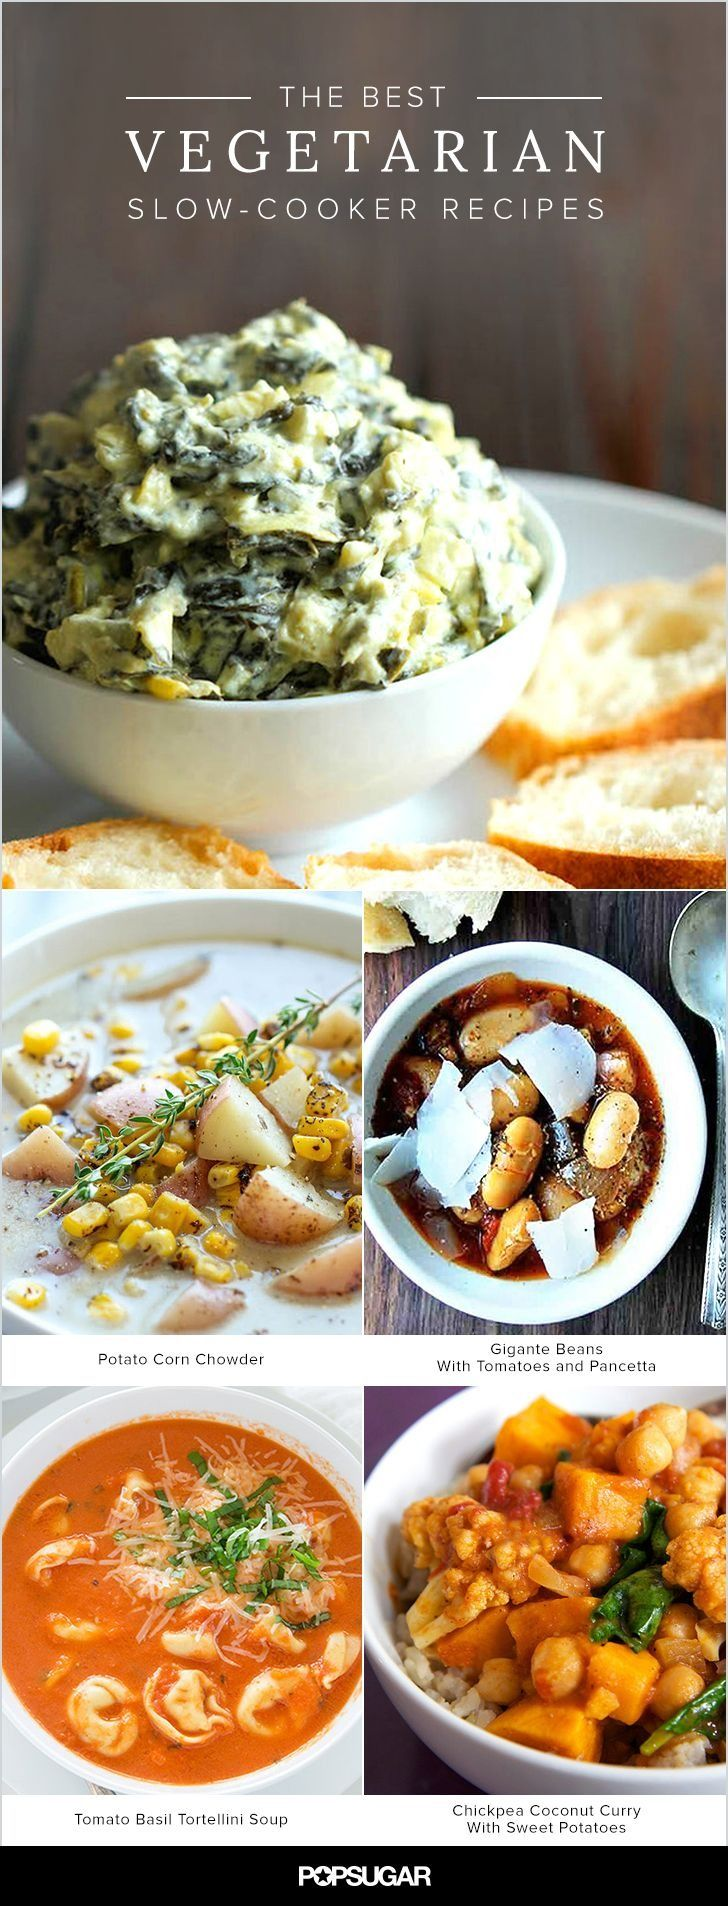 "There are plenty of killer vegetarian dishes that can be made the hands-off way, including chili, soups, ""roasted"" potatoes, beans, and much more. Keep reading for 14 ideas. Do note that a few of the recipes included aren't strictly vegetarian; in those cases we've included a note on how to adapt the recipe for a vegetarian diet."